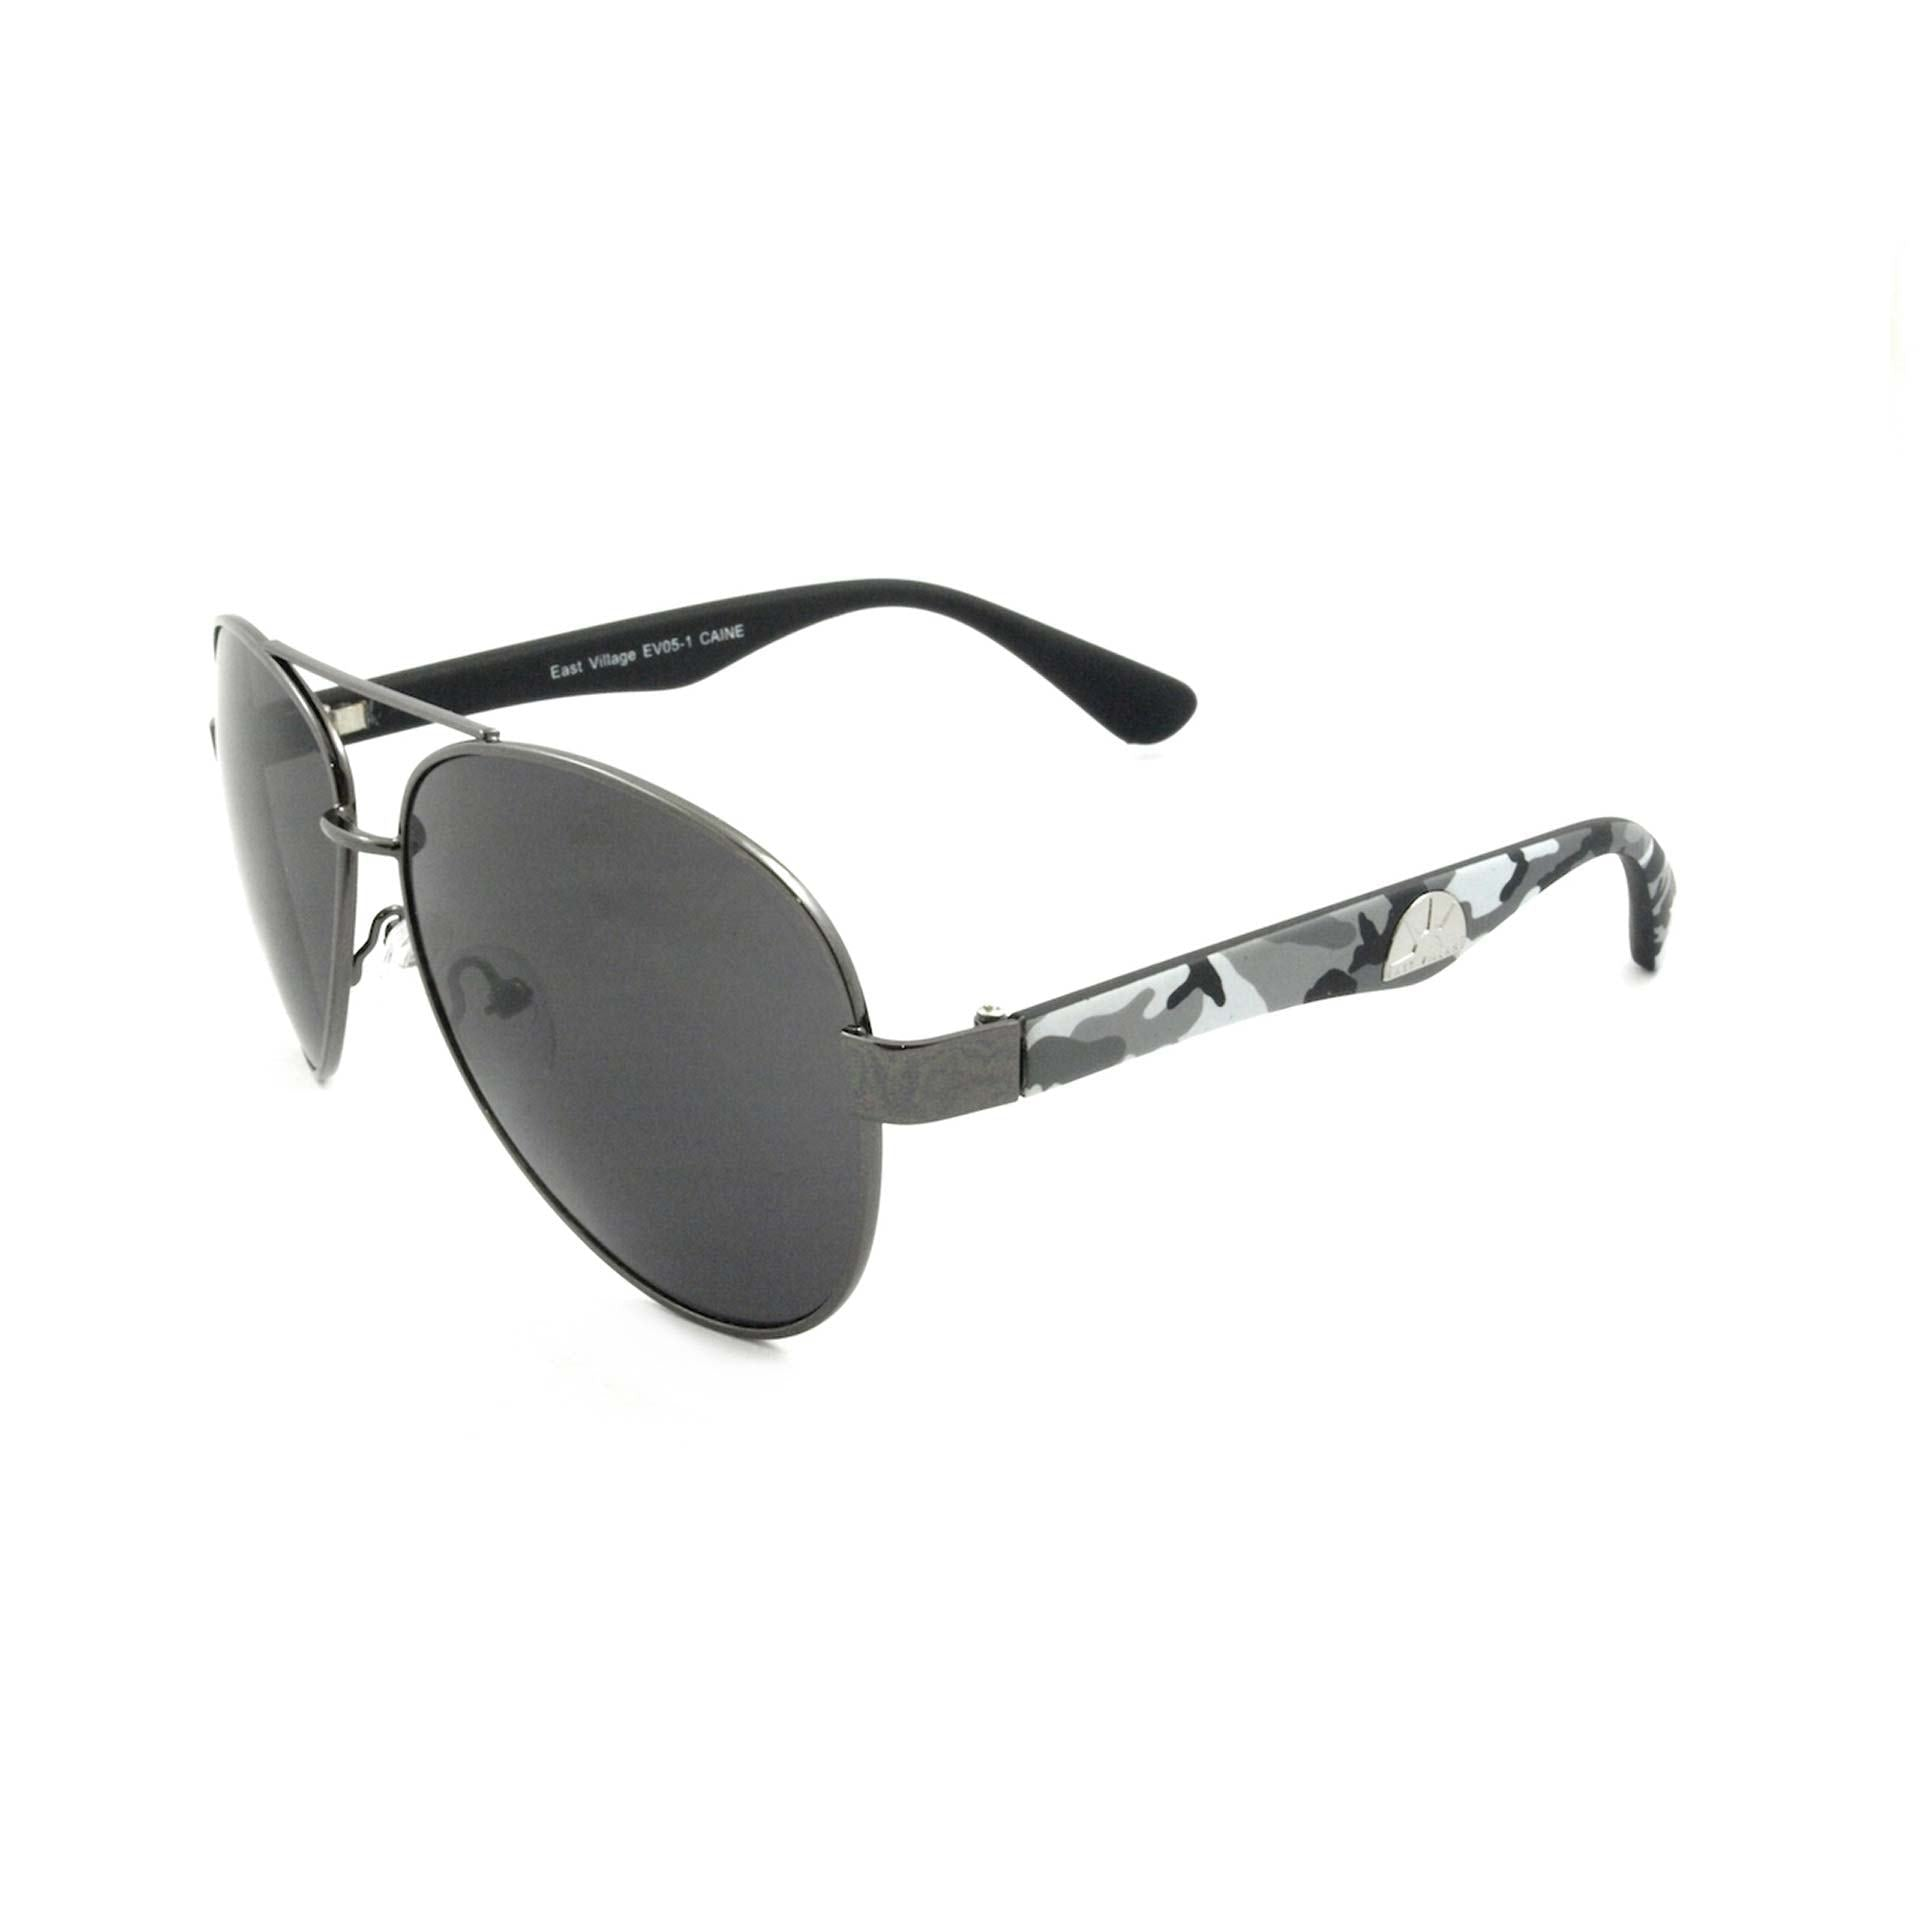 East Village Mens Caine Metal Frame Aviator Sunglasses With Grey Camouflage Temples